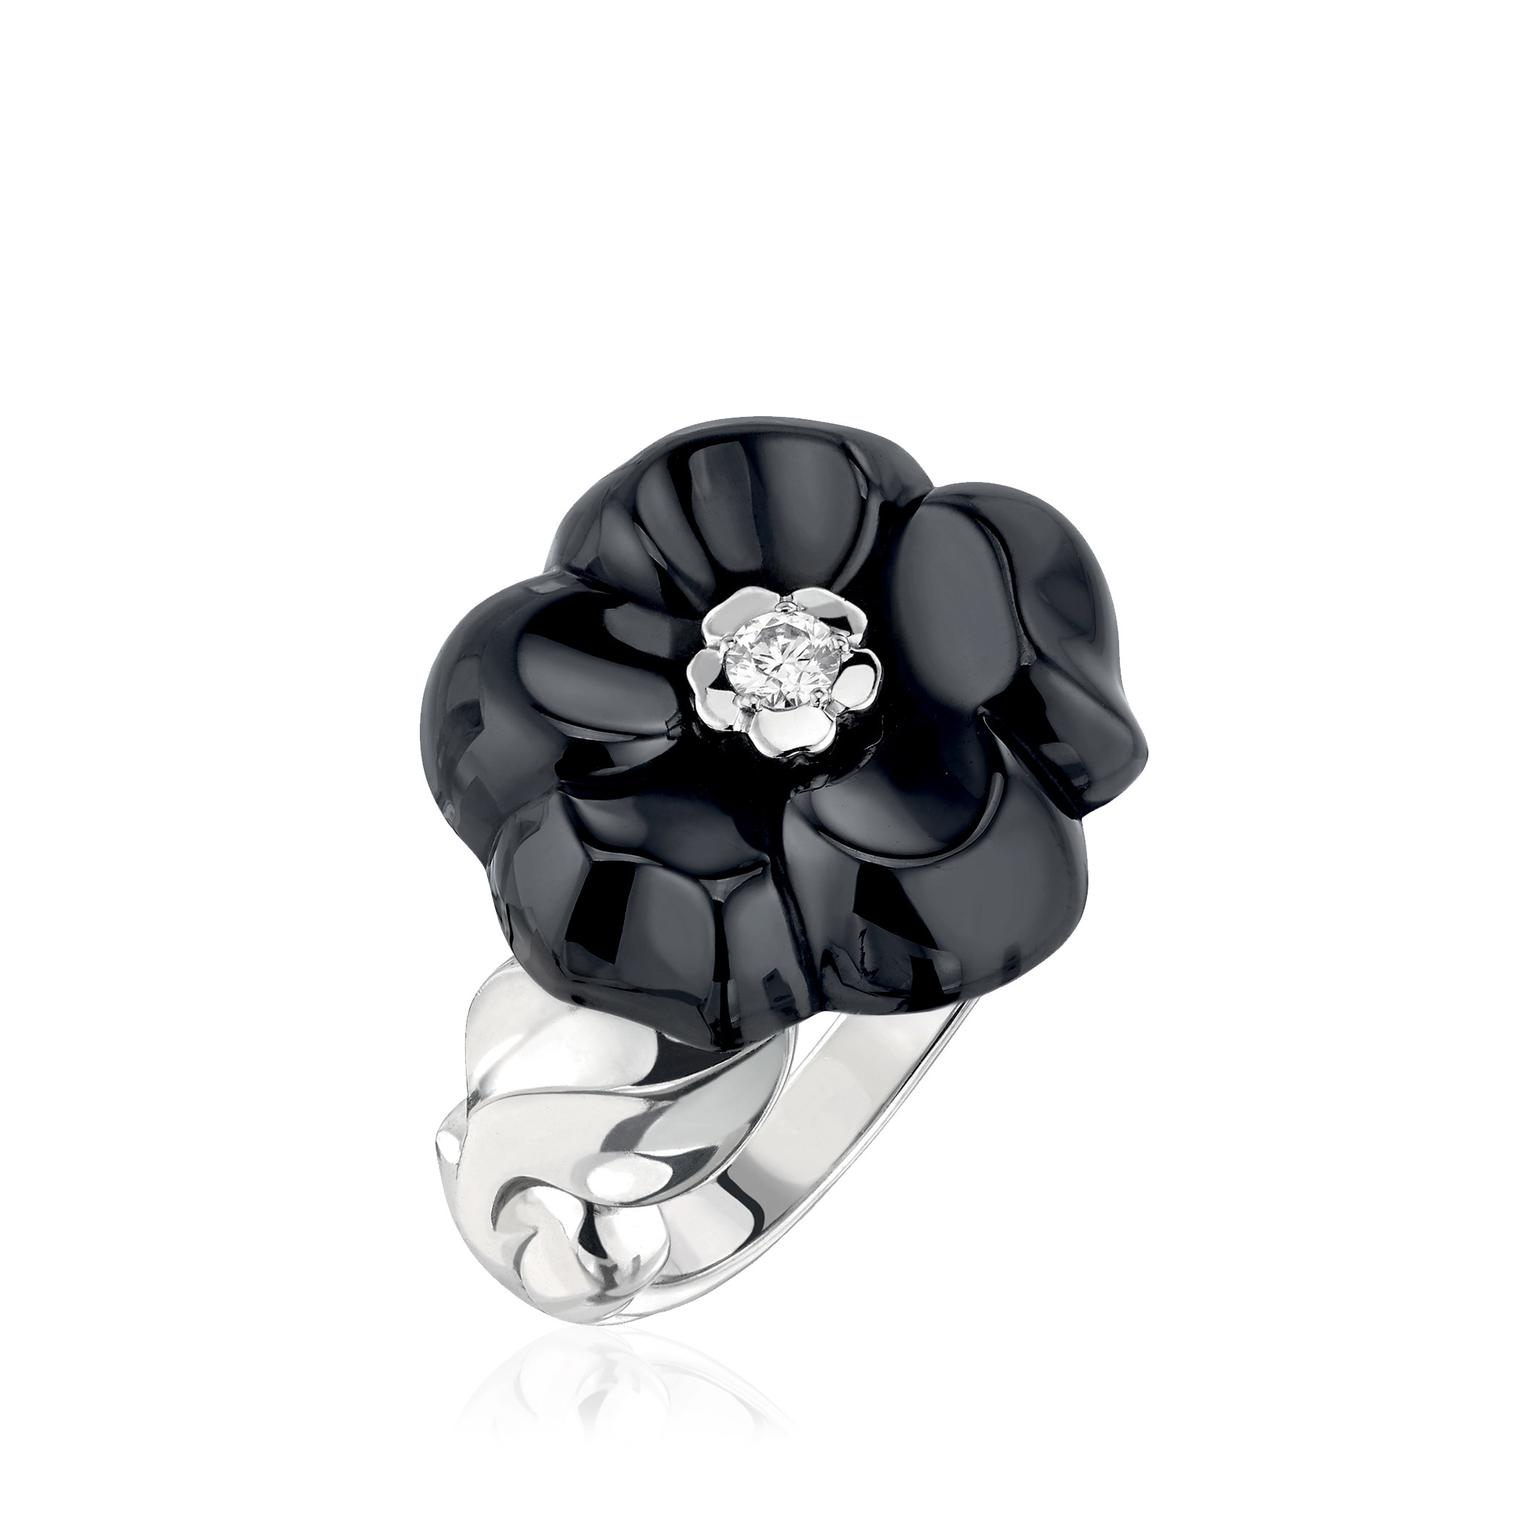 Chanel-Camelia-Galbe-ring-black-ceramic-zoom